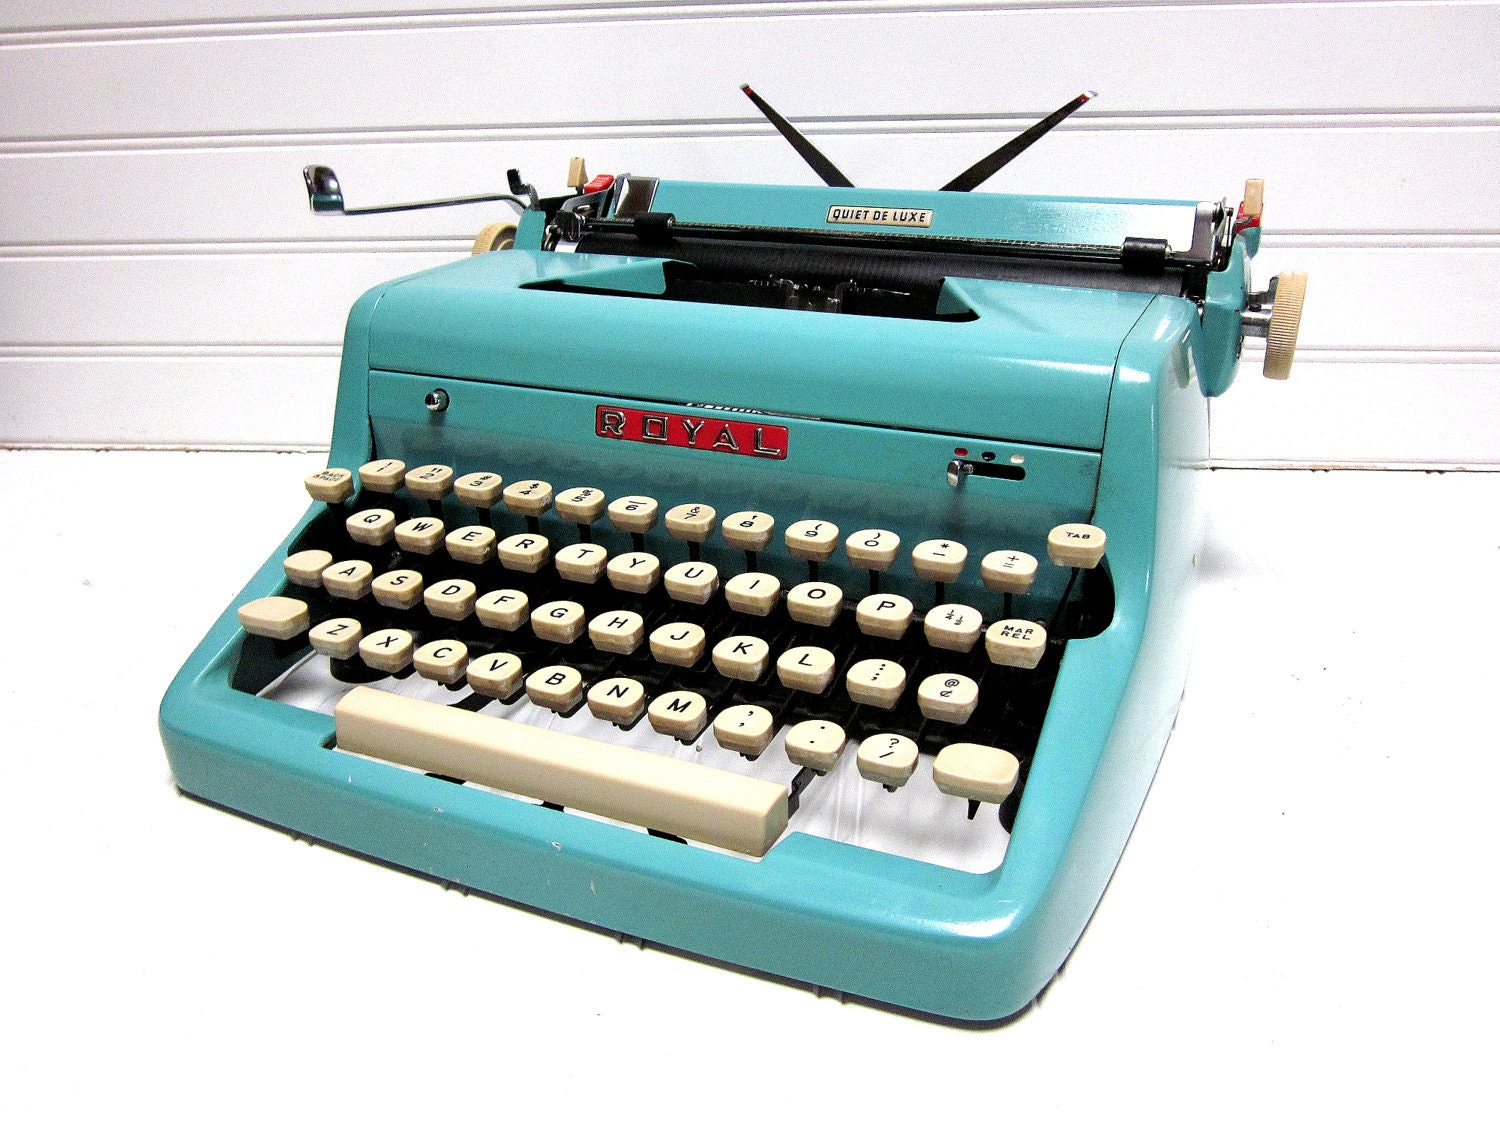 Sale Vintage Typewriter Turquoise Royal Quiet Deluxe Baby Blue